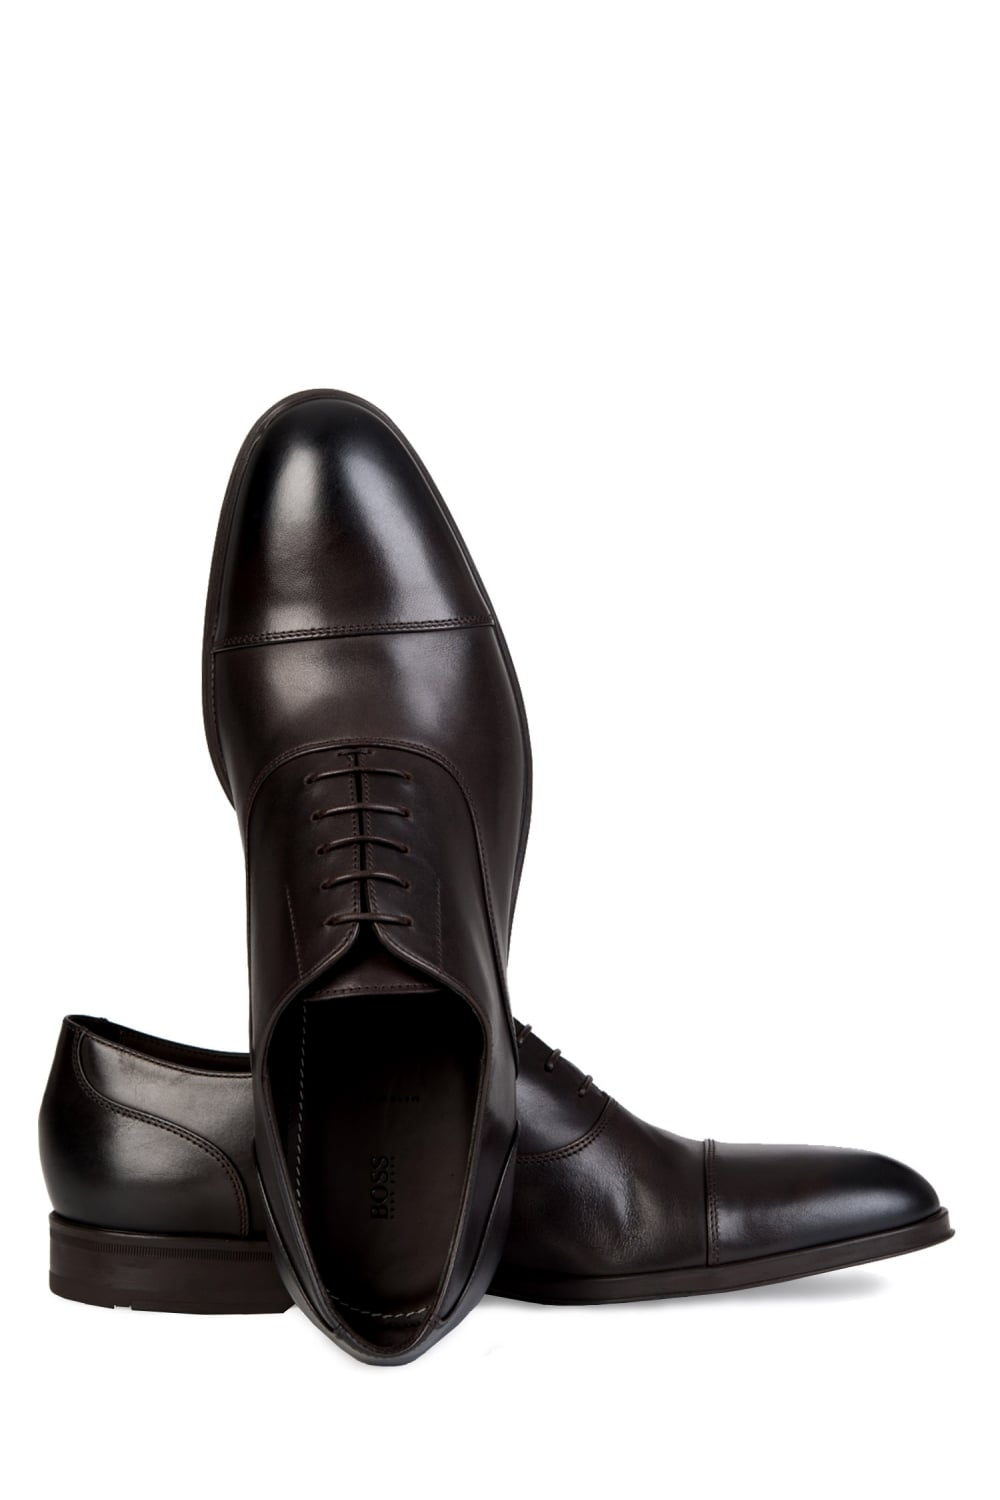 https://www.circle-fashion.com/images/hugo-boss-eton-oxford-shoes-dark-brown-p40246-34706_image.jpg